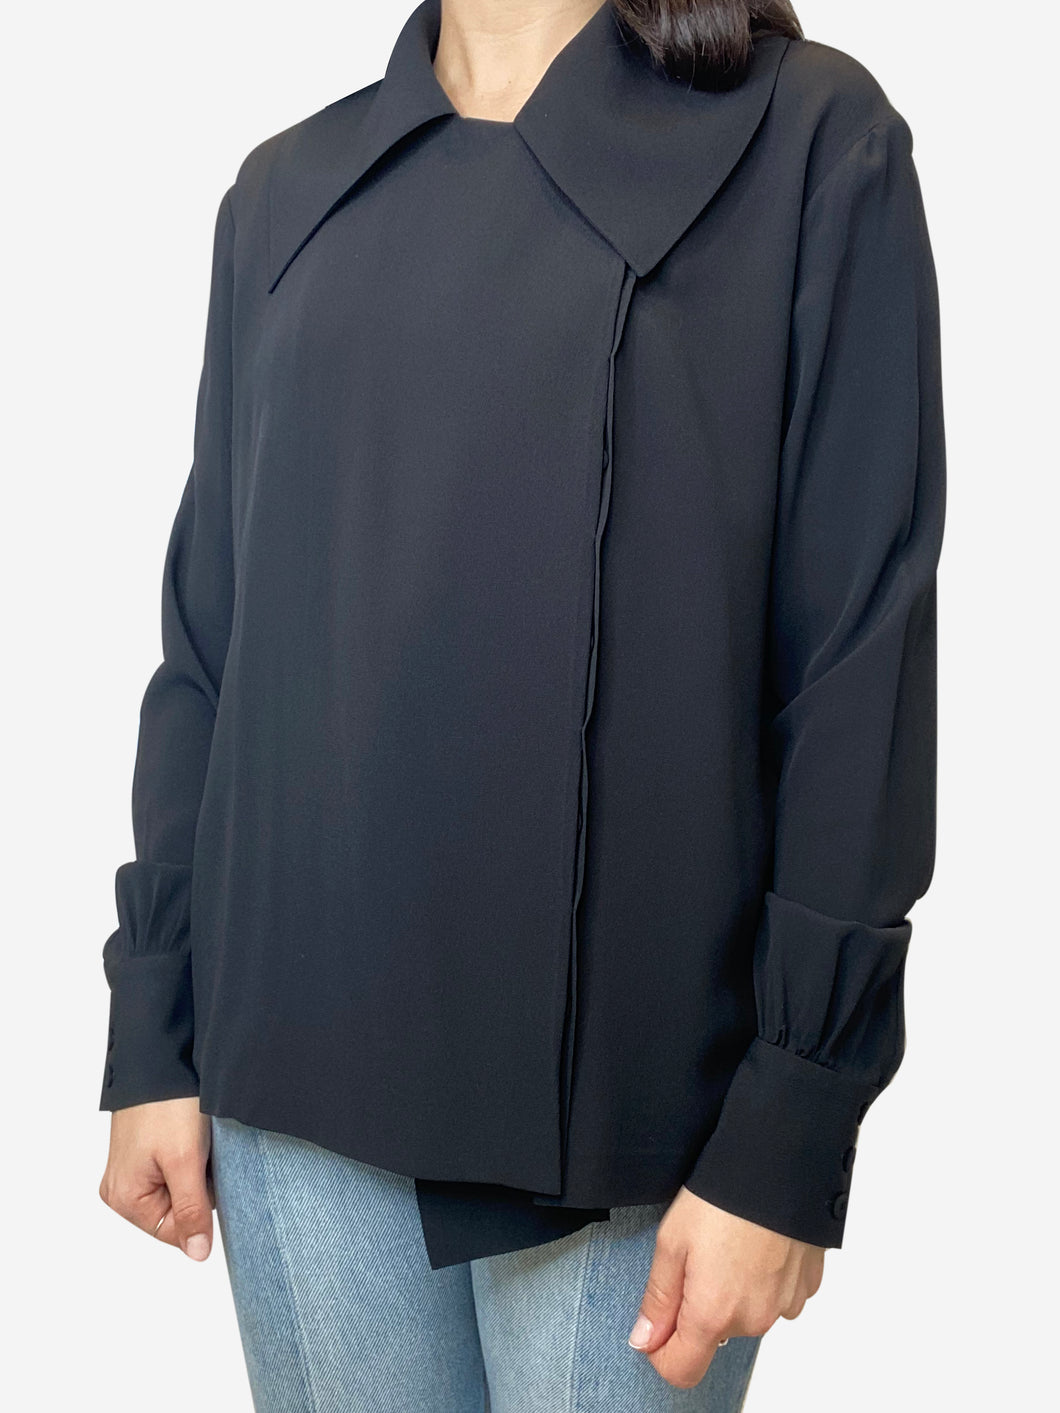 Black asymmetric seamed button up blouse- size UK 12